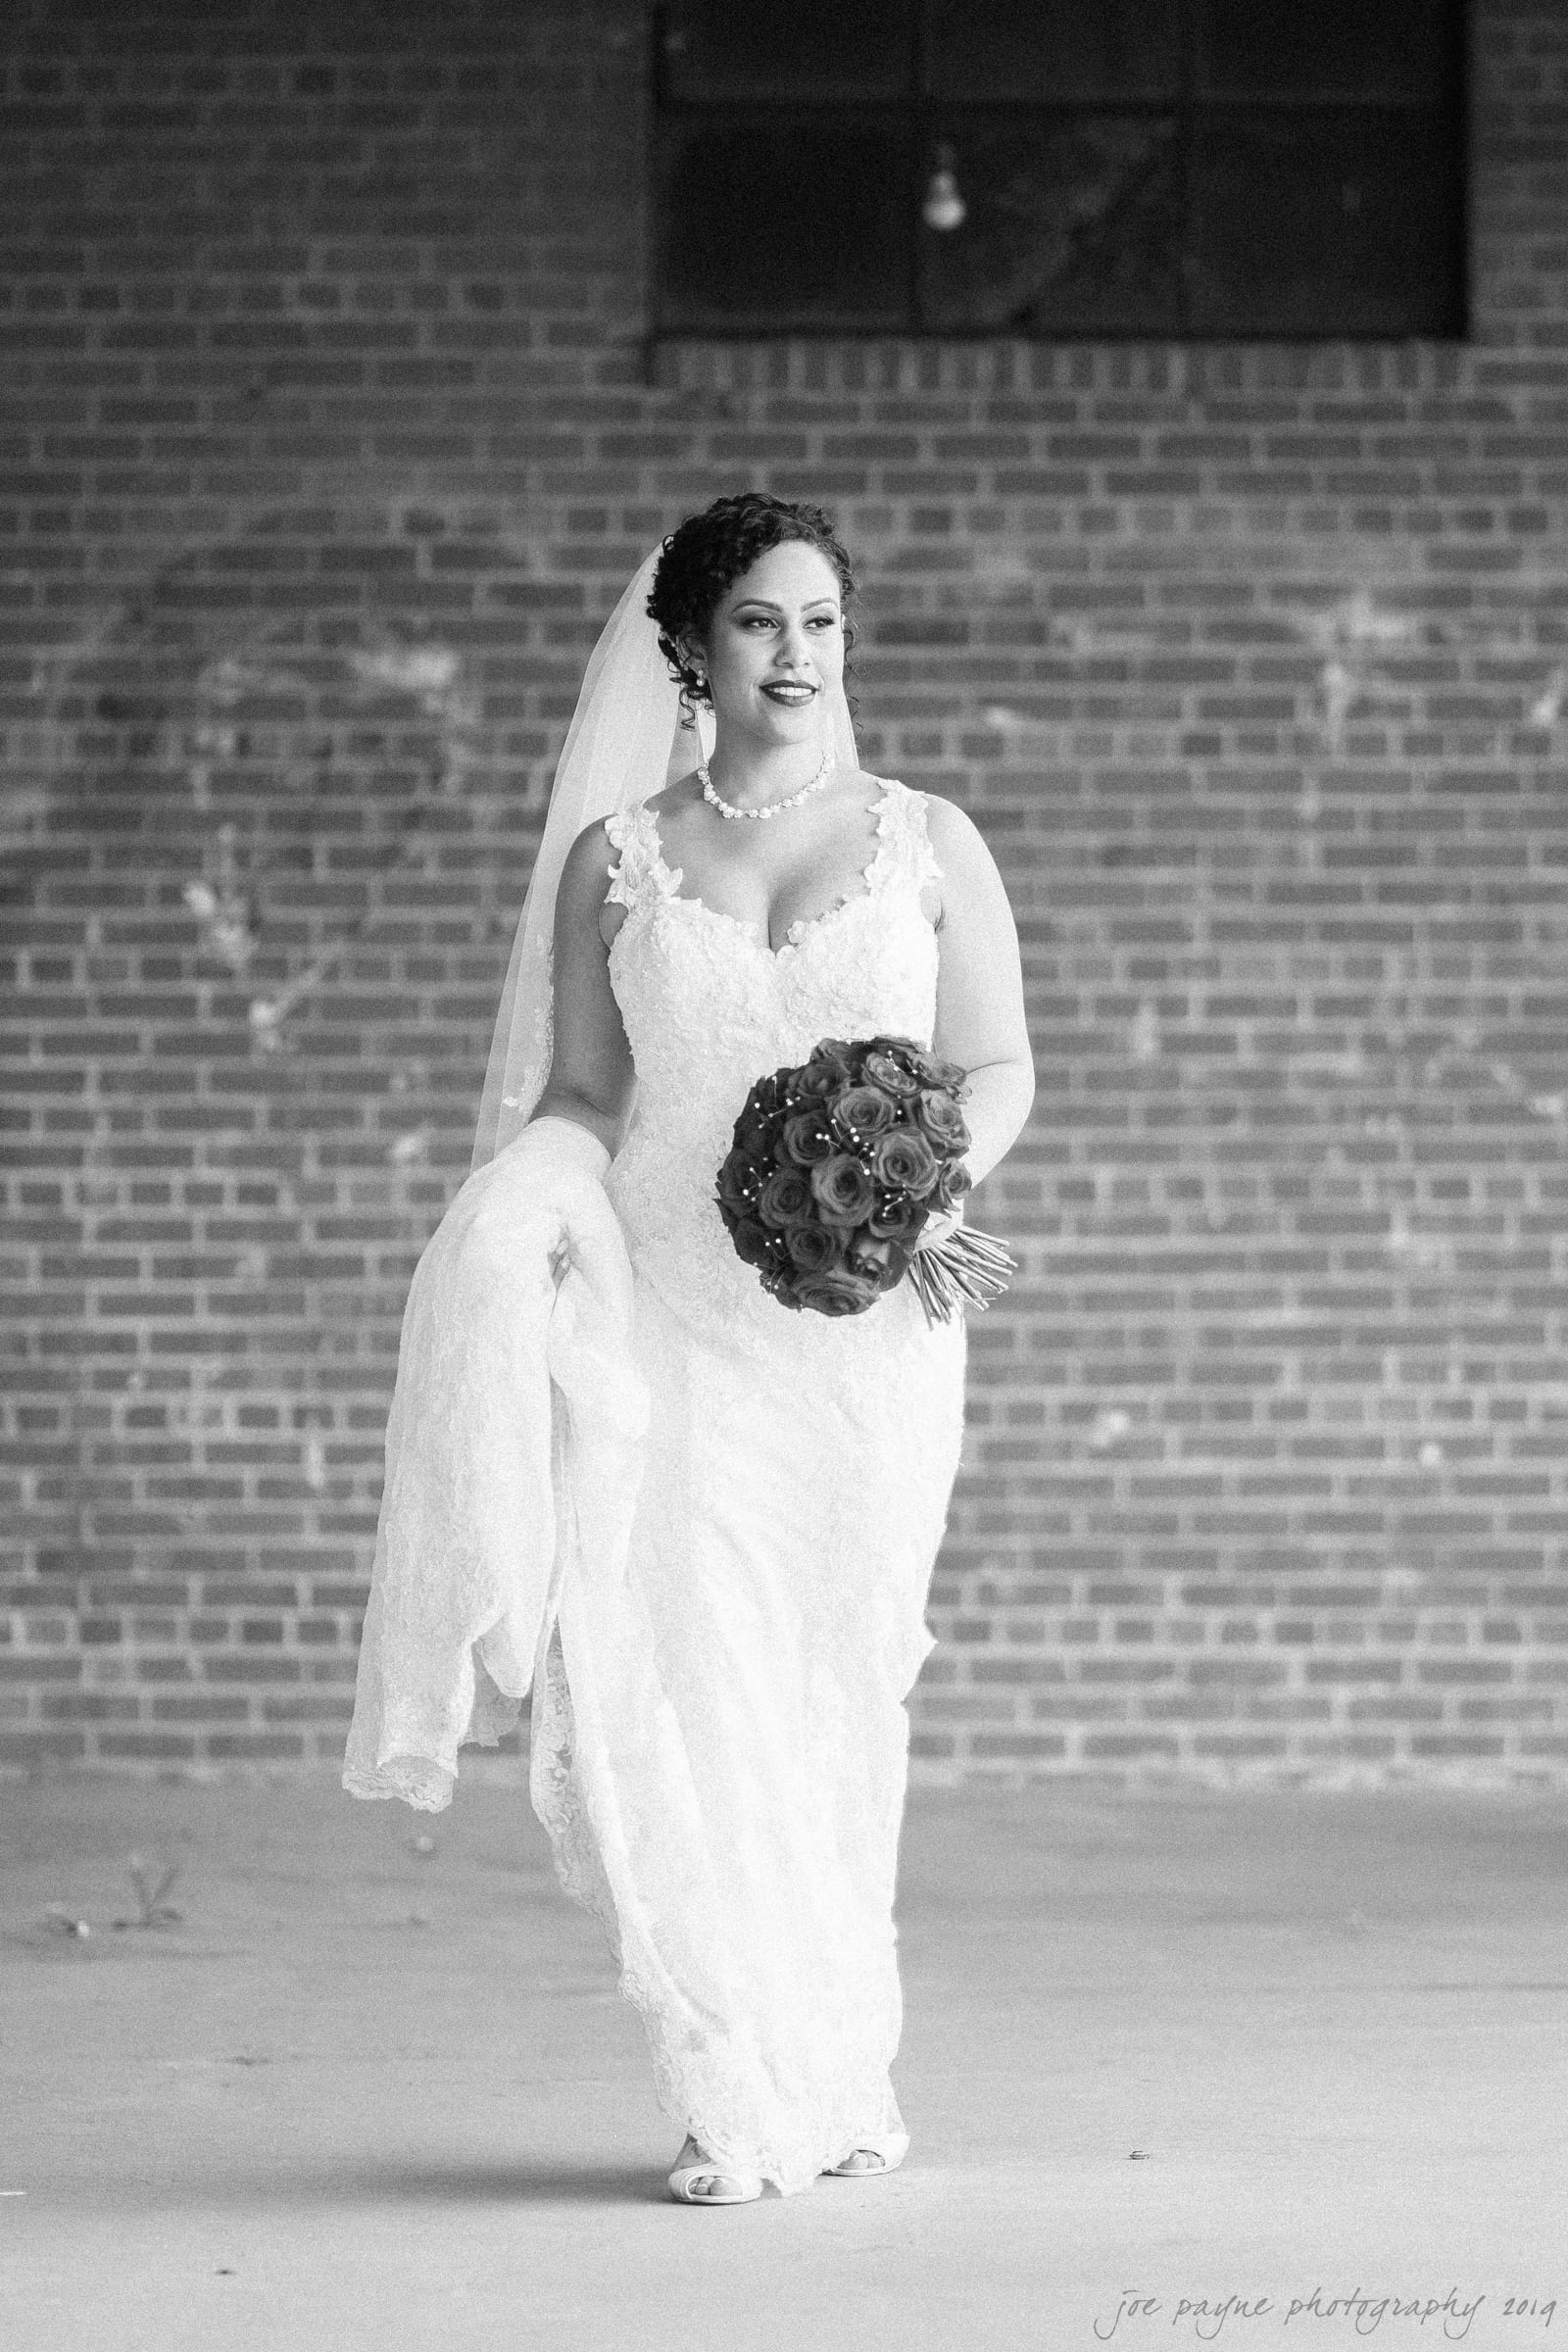 melrose knitting mill raleigh wedding photographer melanie anthony 40